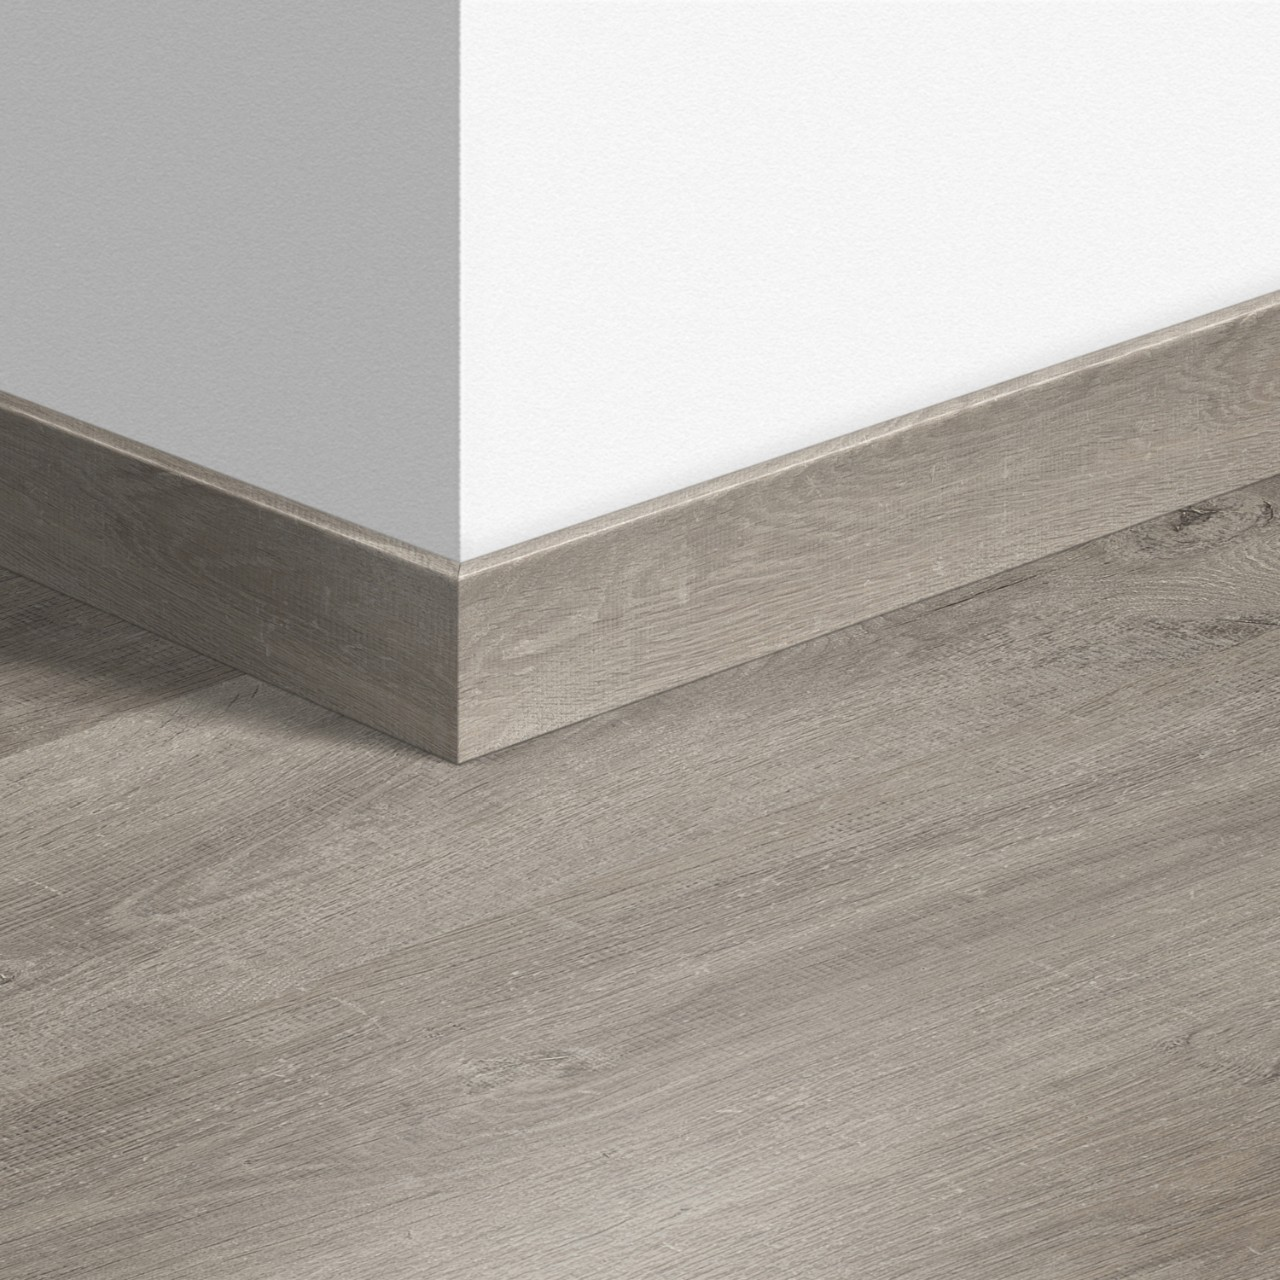 QSSK Laminate Accessories Venice Oak grey QSSK03575